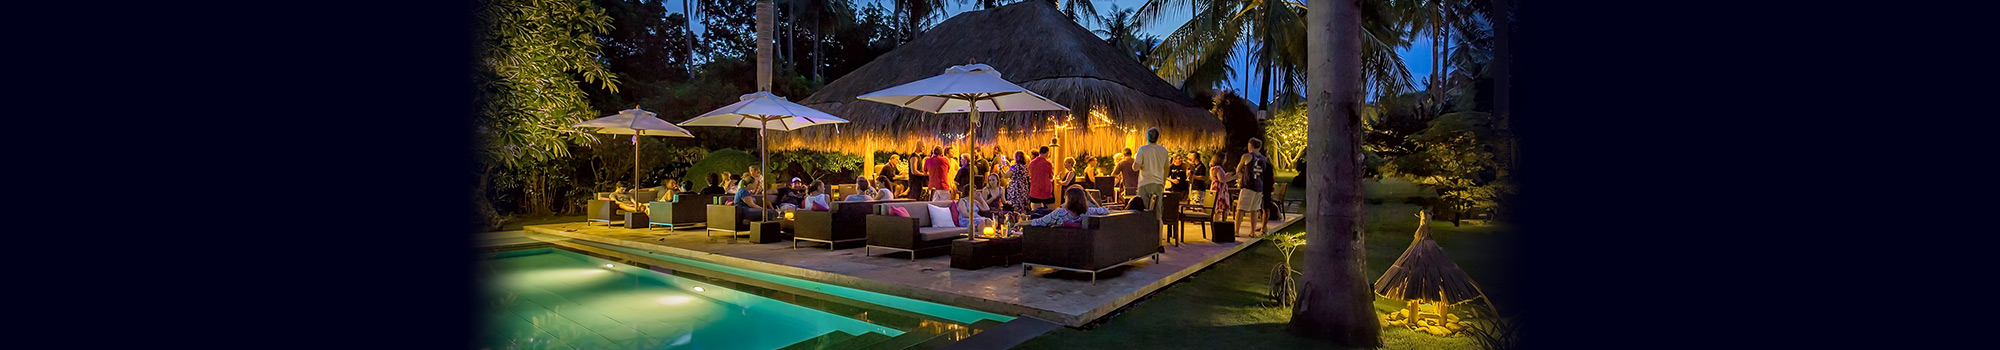 The poolside bar at Atmosphere has a mix of delicious cocktails, sumptuous italian coffees, wine, spirits and colorful shakes and frappes as well as bar snack food